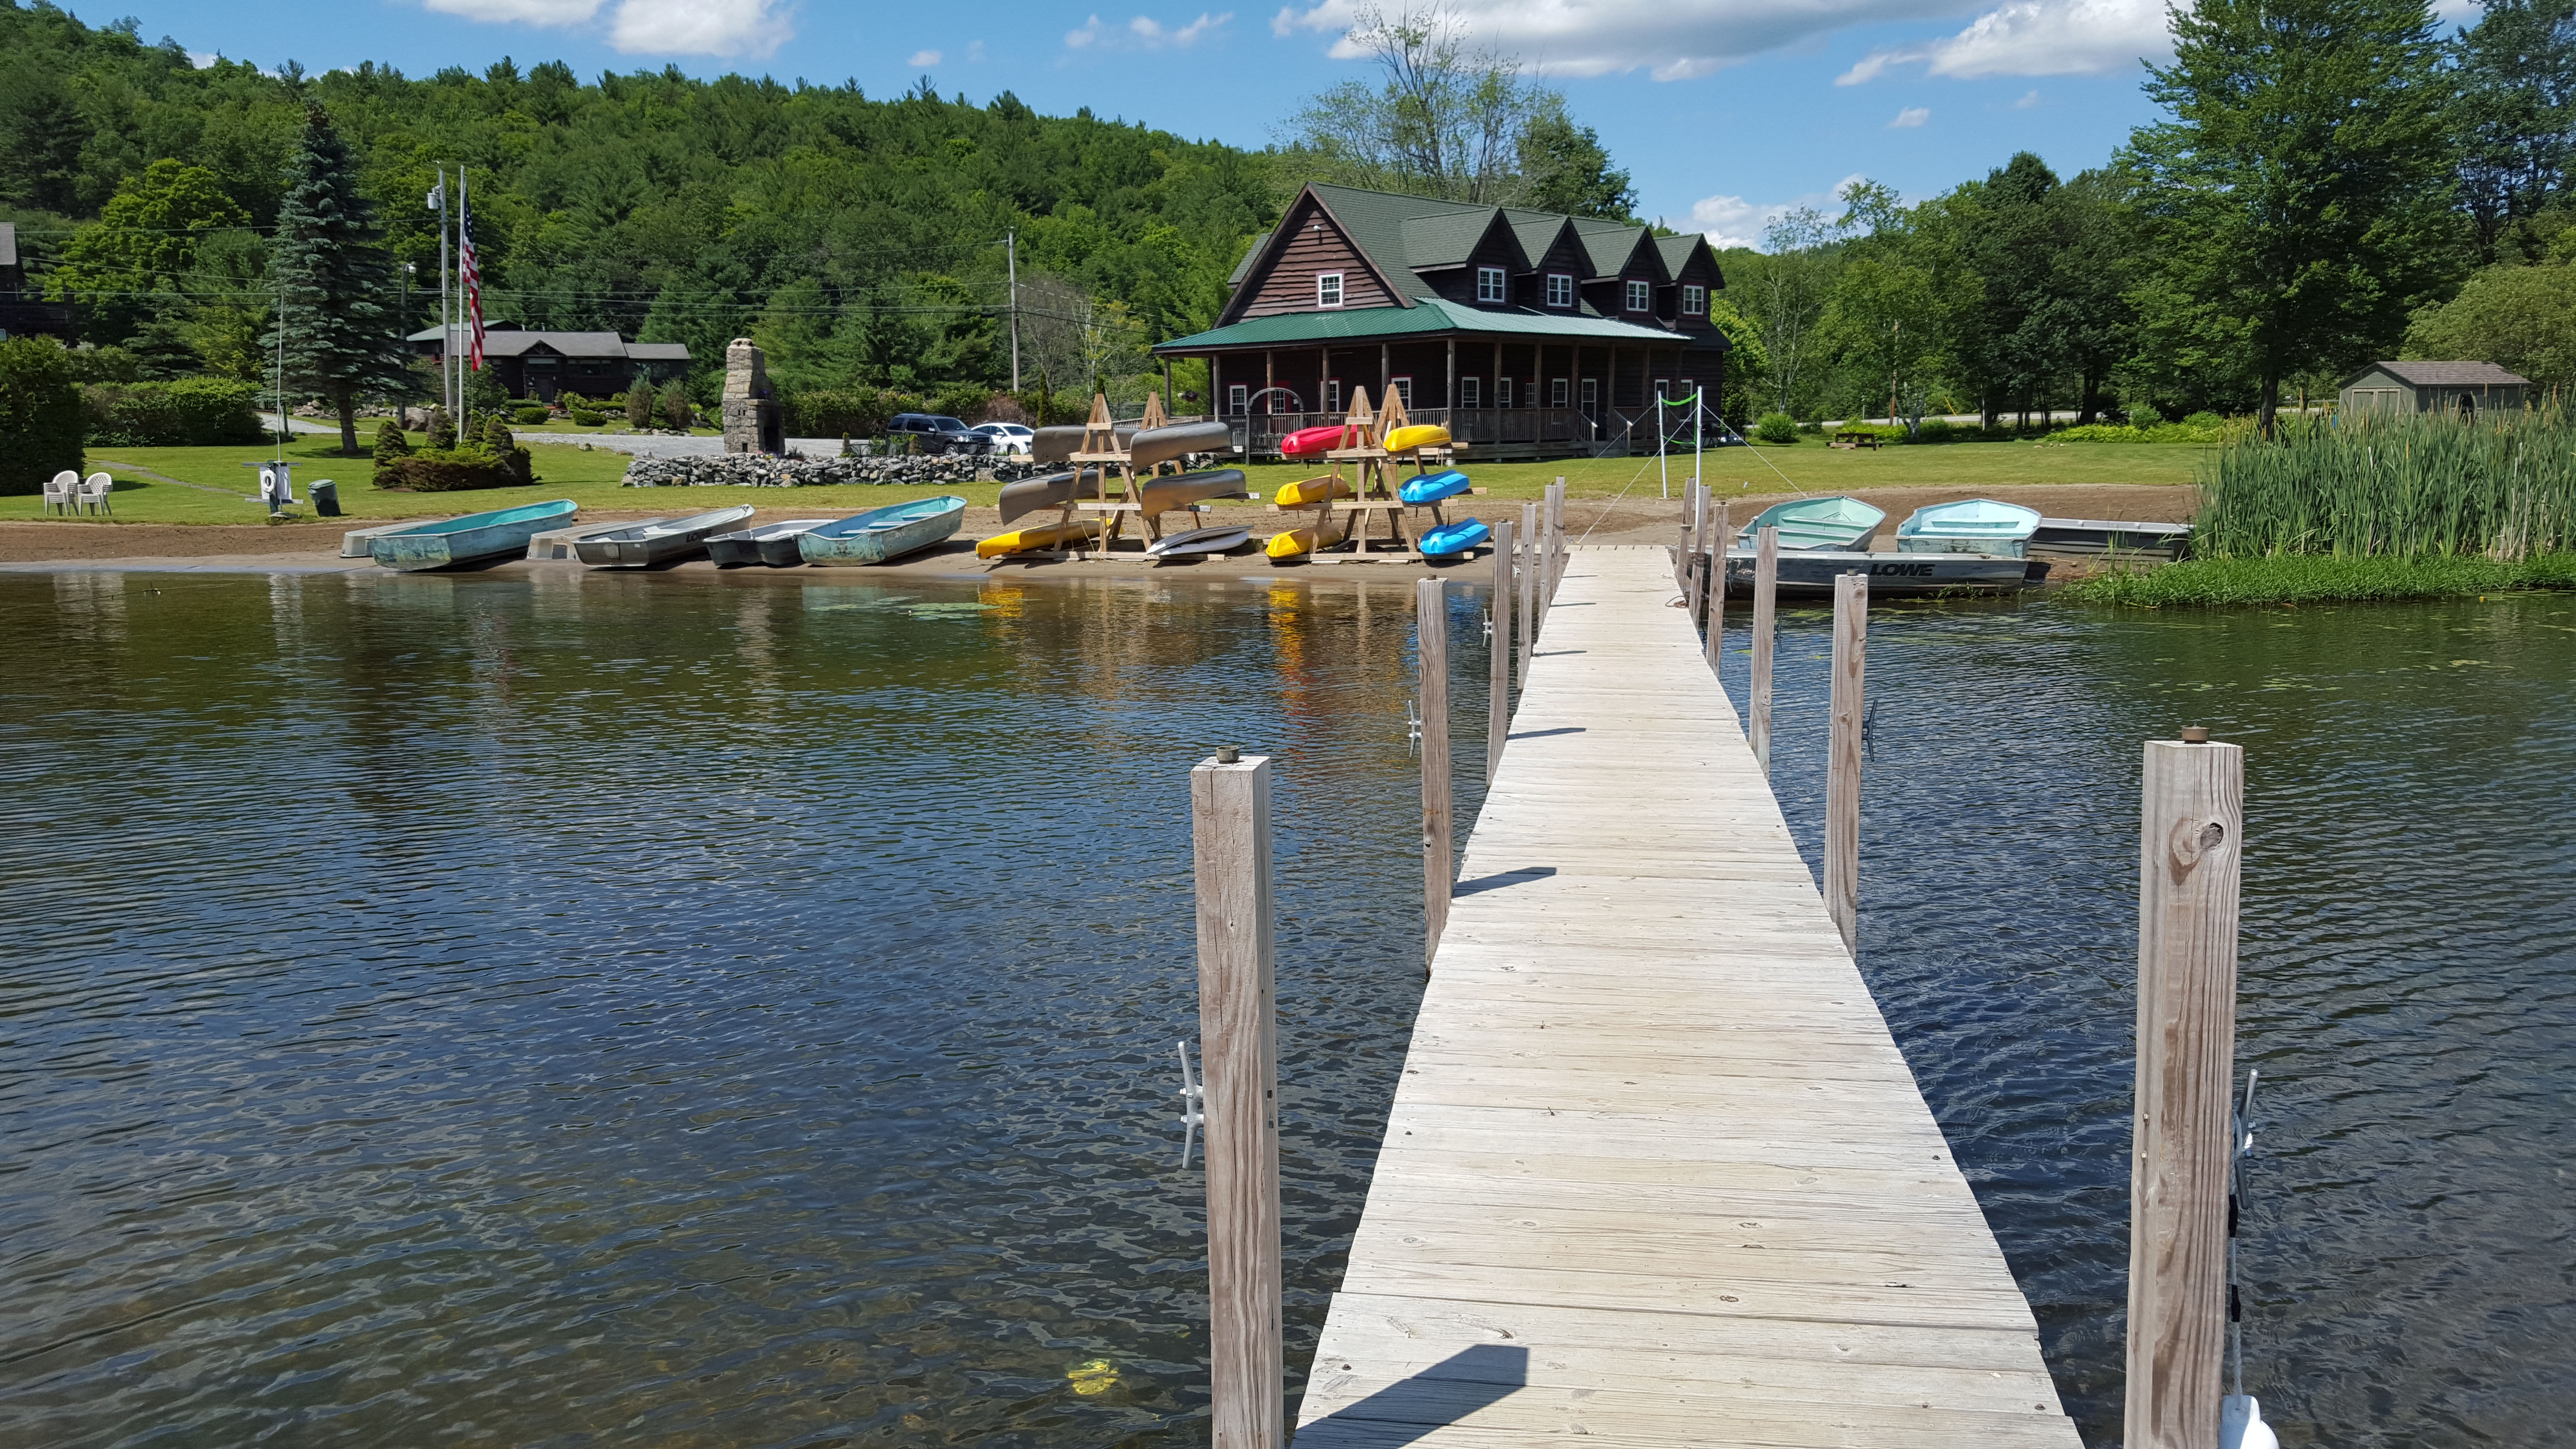 2015 Reunion at Trout Lake Saturday, June 27, 2015 at Twin Pines Resort Planned!